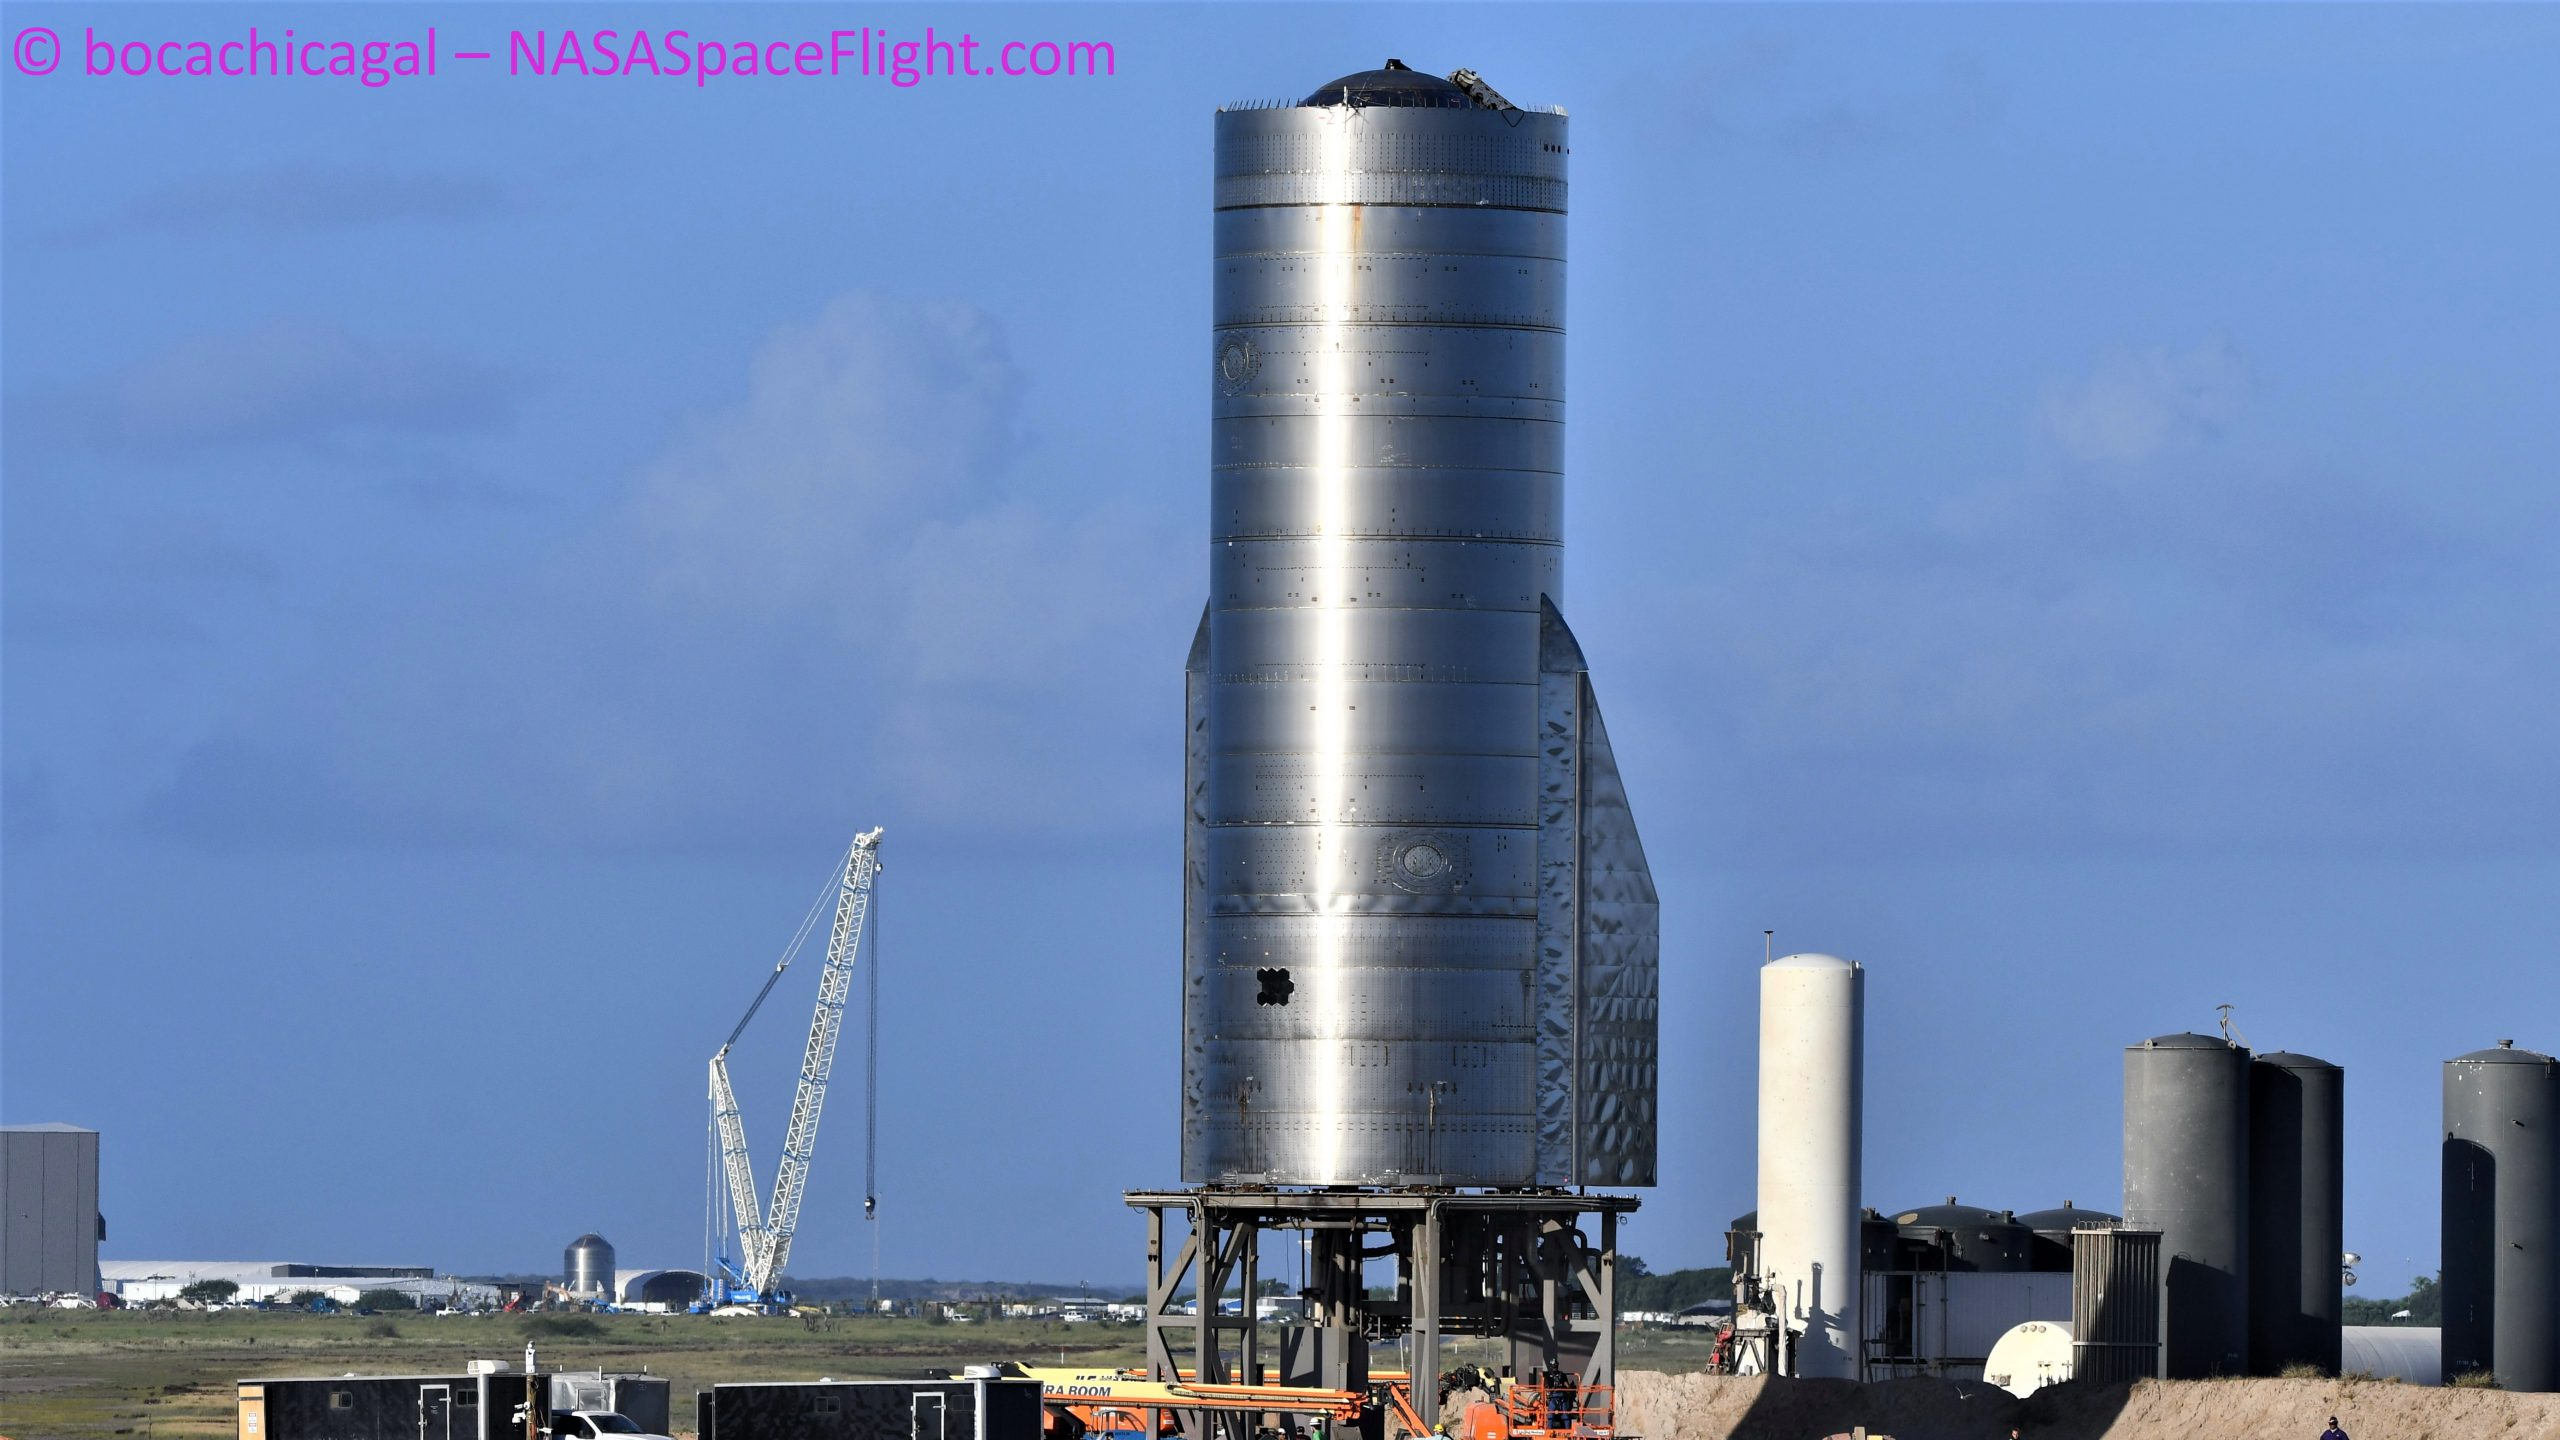 Starship Boca Chica 102120 (NASASpaceflight – bocachicagal) SN8 nose mate prep 3 crop